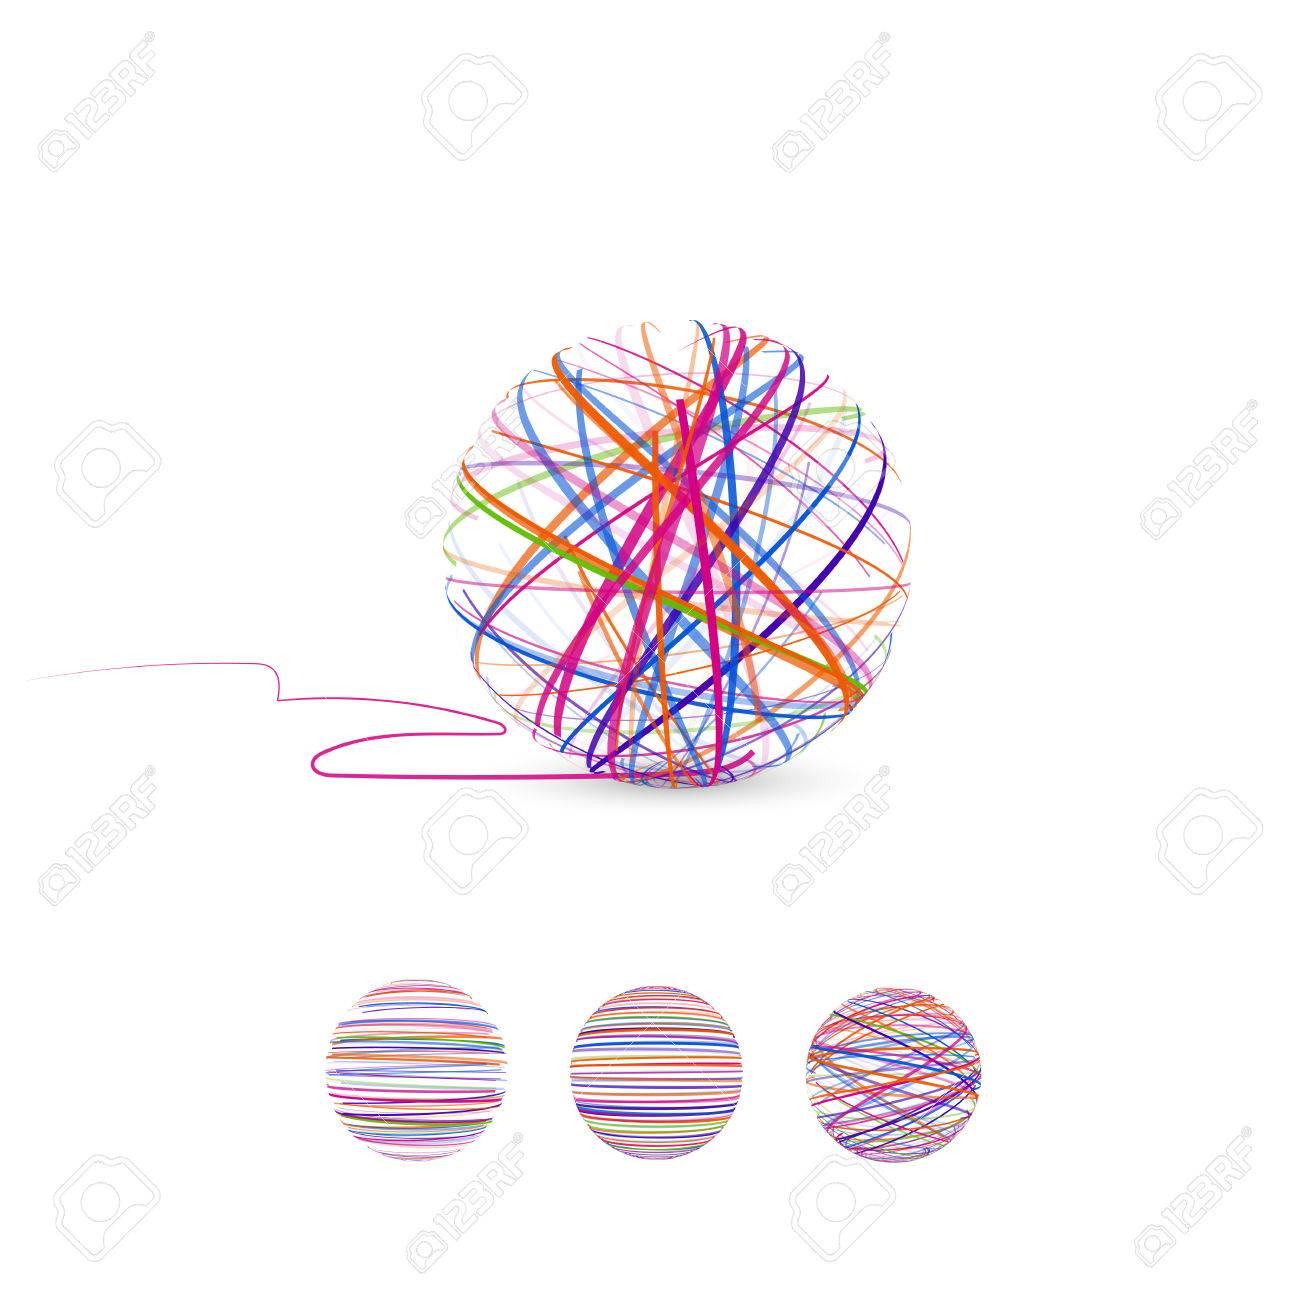 Tangle Vector Illustration Ball Of Thread For Knitting Royalty Free Cliparts Vectors And Stock Illustration Image 82257662